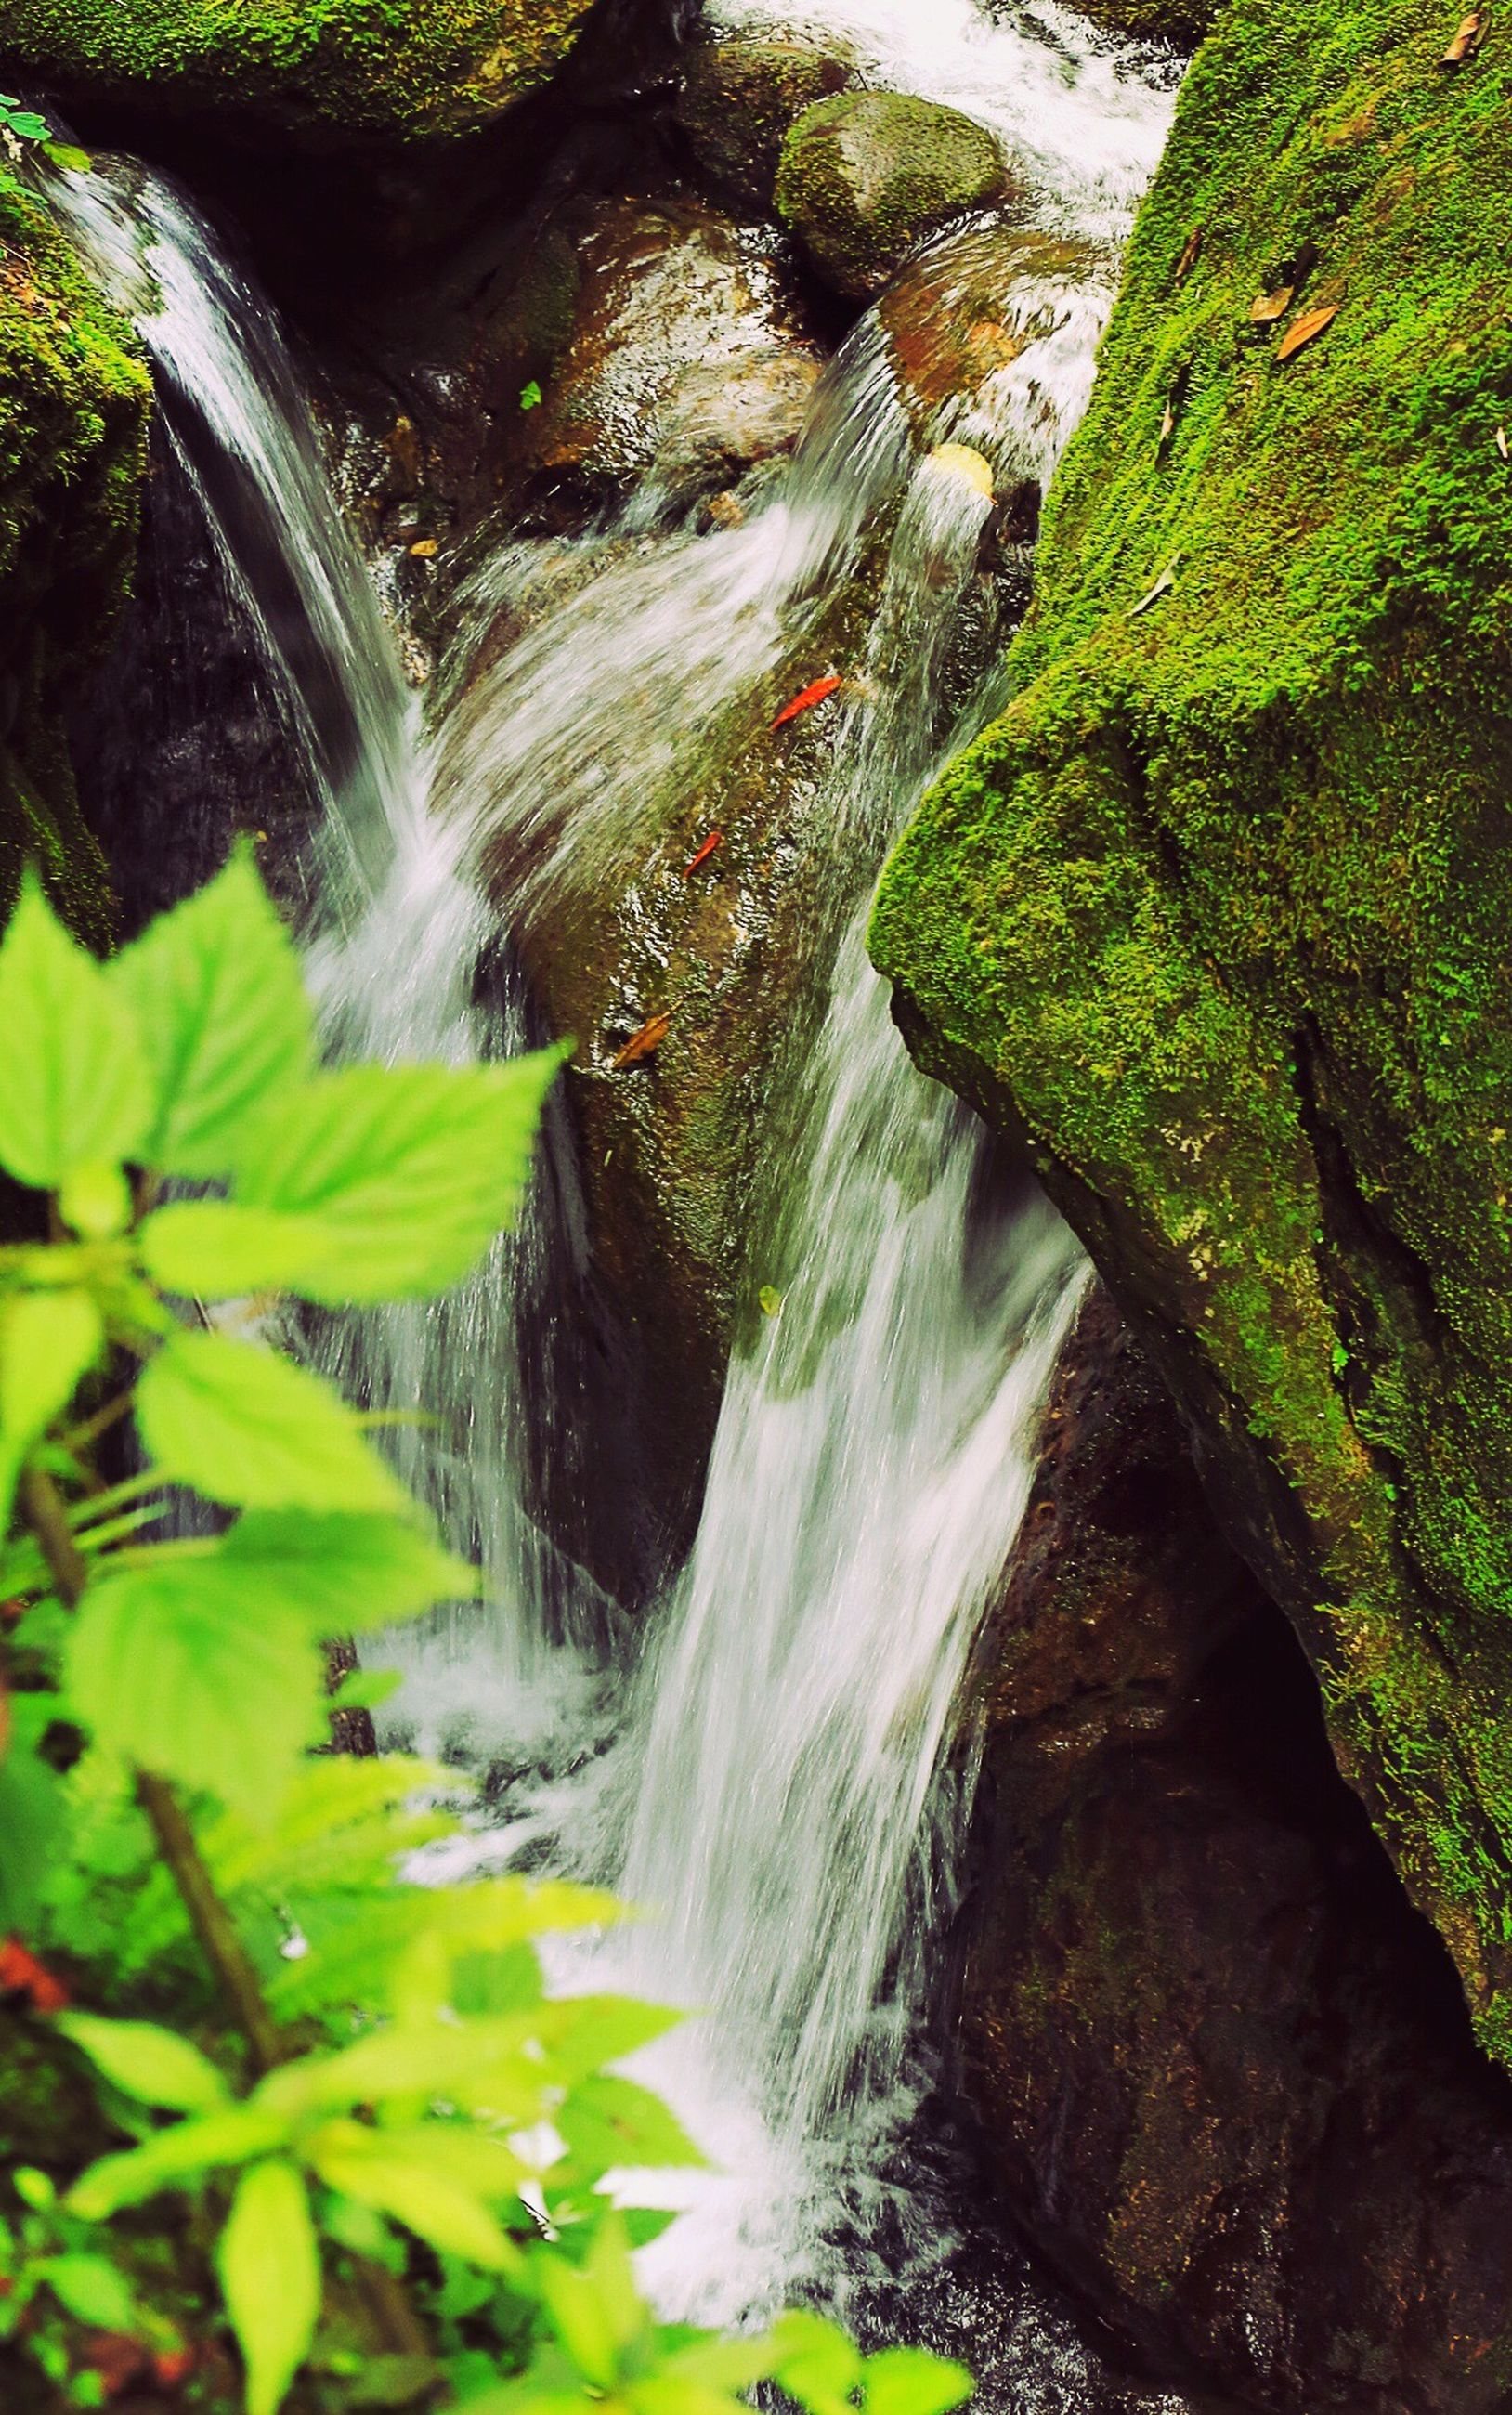 waterfall, flowing water, water, motion, flowing, long exposure, beauty in nature, nature, forest, scenics, rock - object, blurred motion, tree, stream, plant, growth, green color, idyllic, moss, outdoors